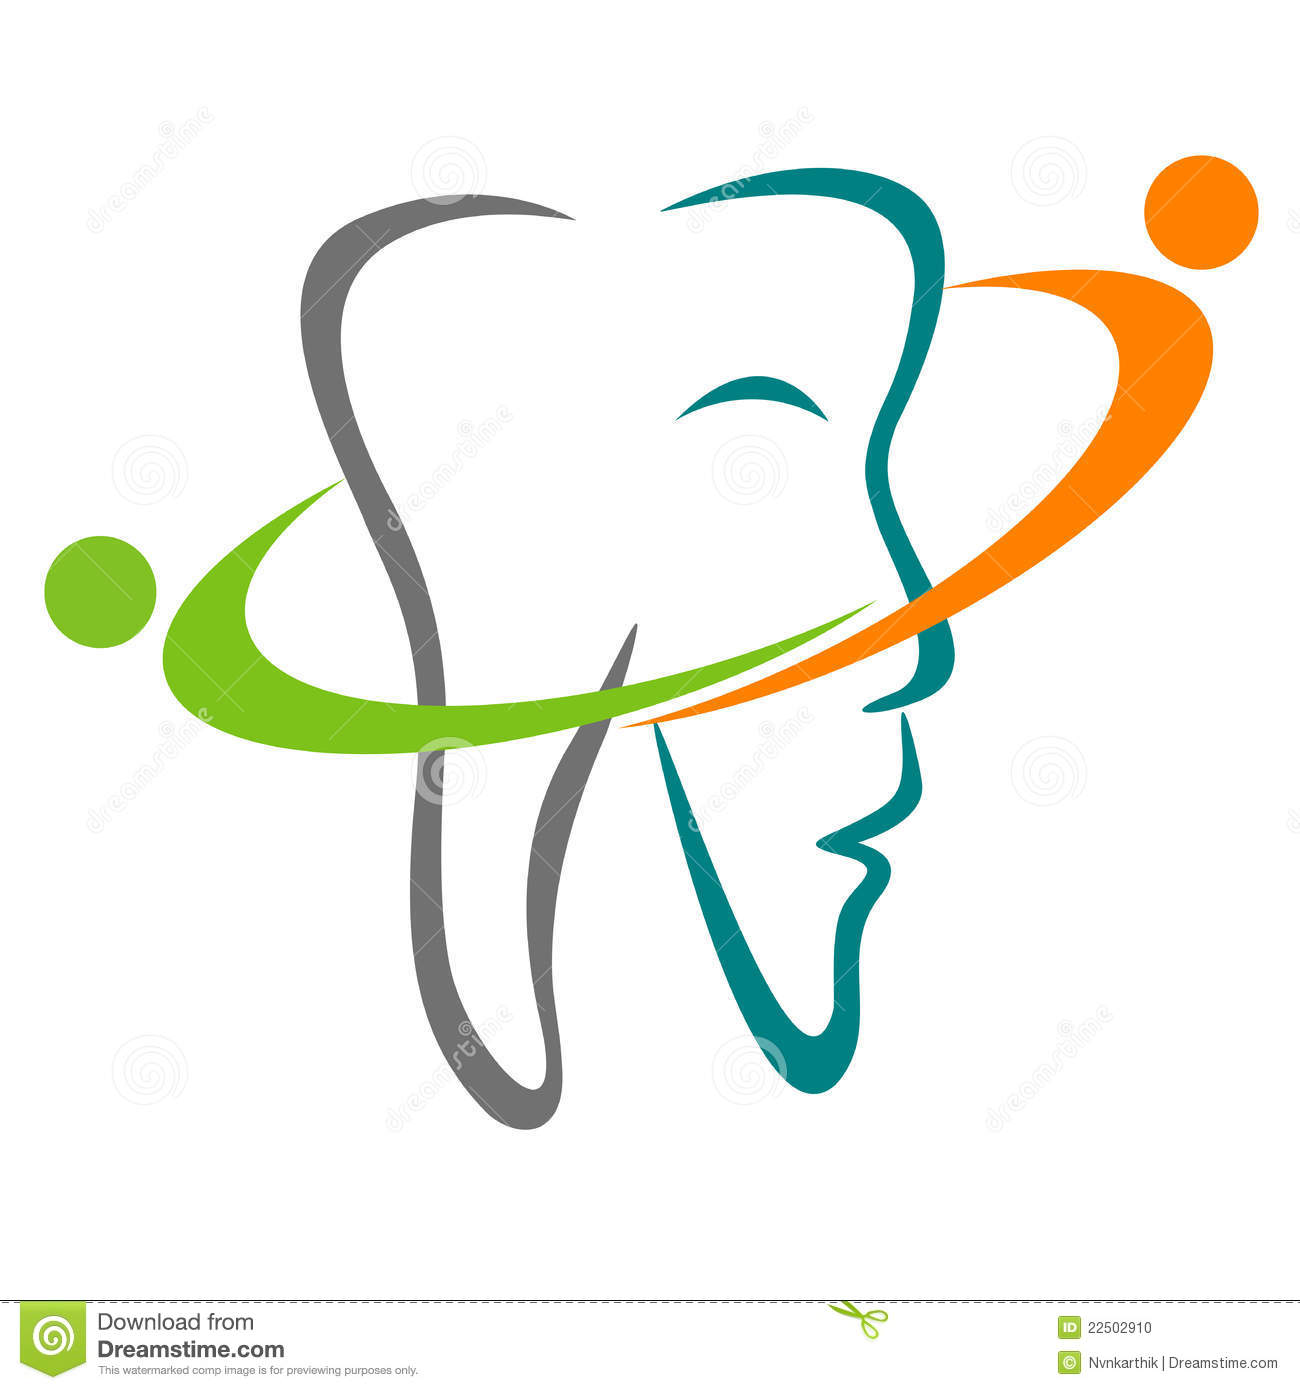 Dental Logo Royalty Free Stock Photo - Image: 4166255